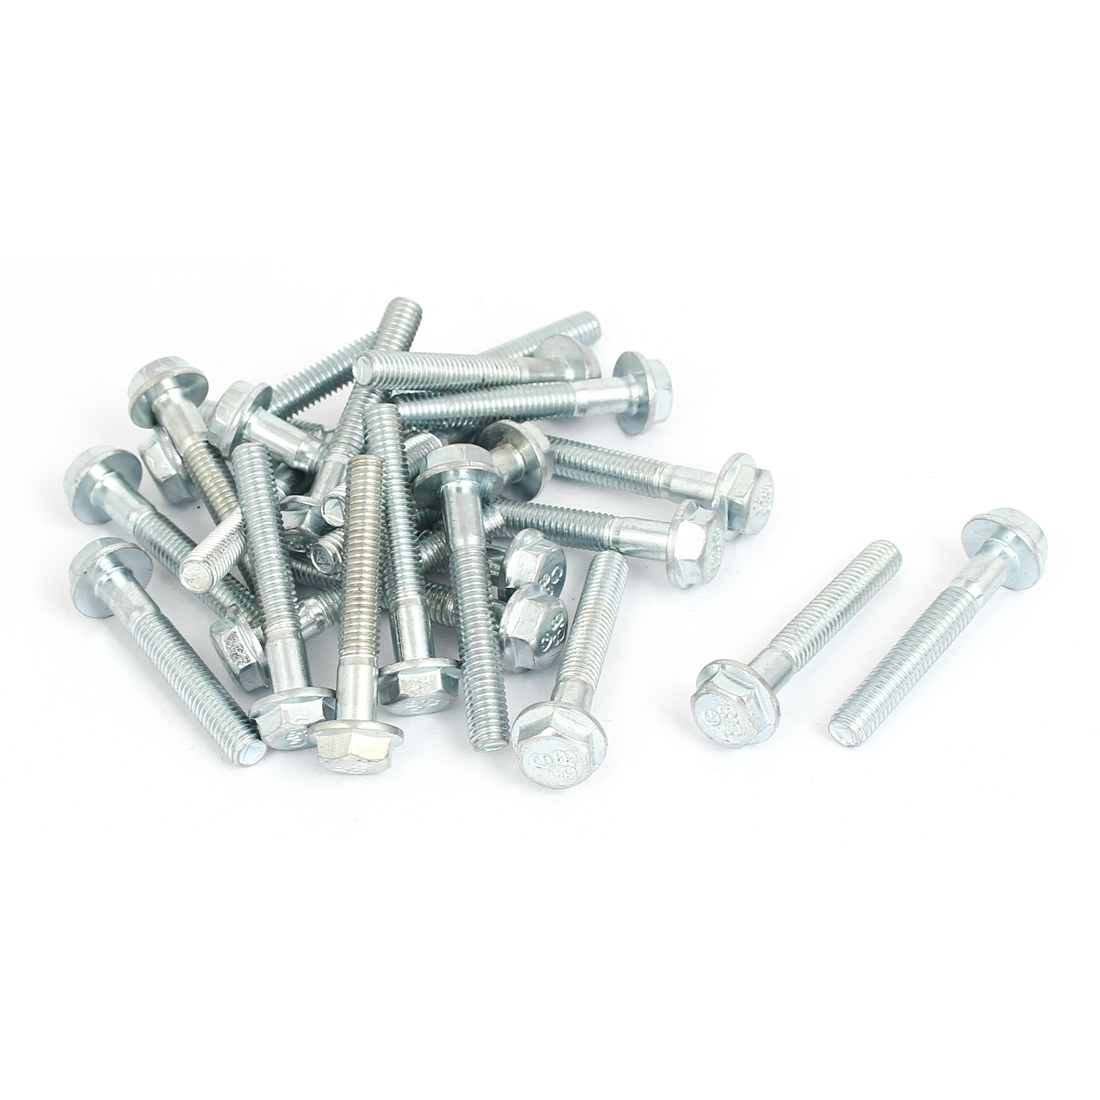 M6x40mm Grade 8.8 Half Thread Hexagon Hex Flange Bolts Screws 25pcs